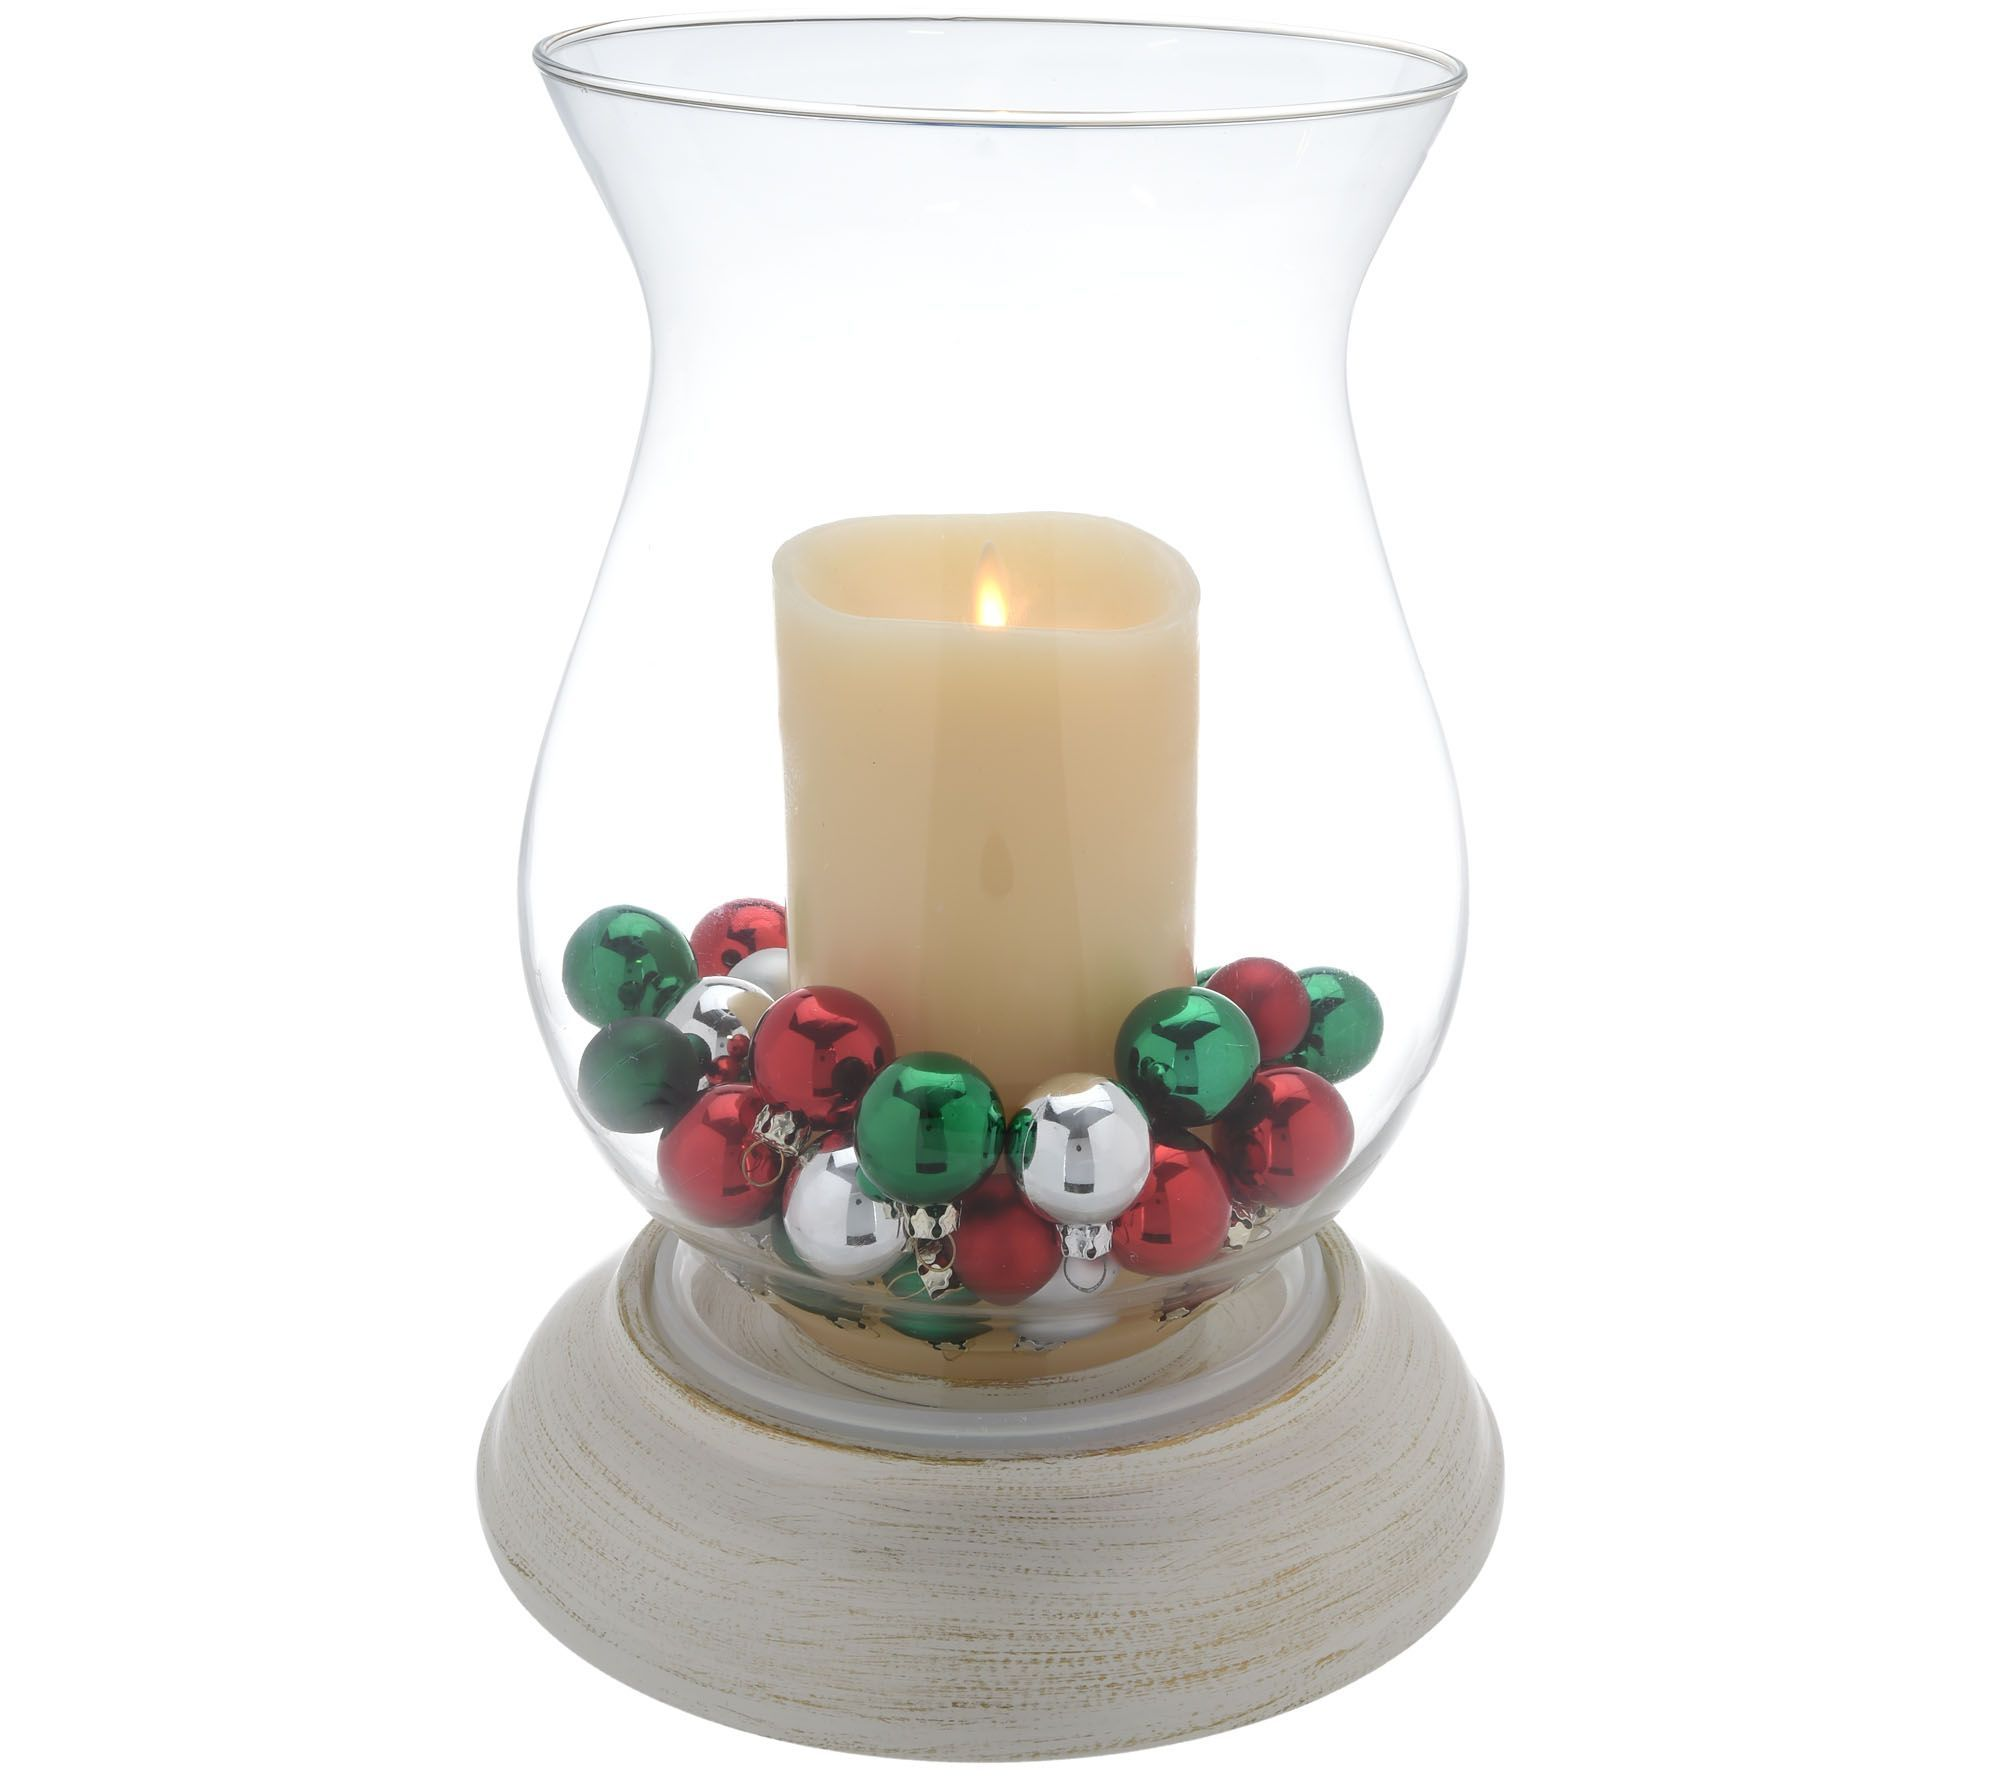 Qvc Flameless Candles Adorable Luminara Hurricane With Flameless Candle And Two Seasonal Fills Design Inspiration